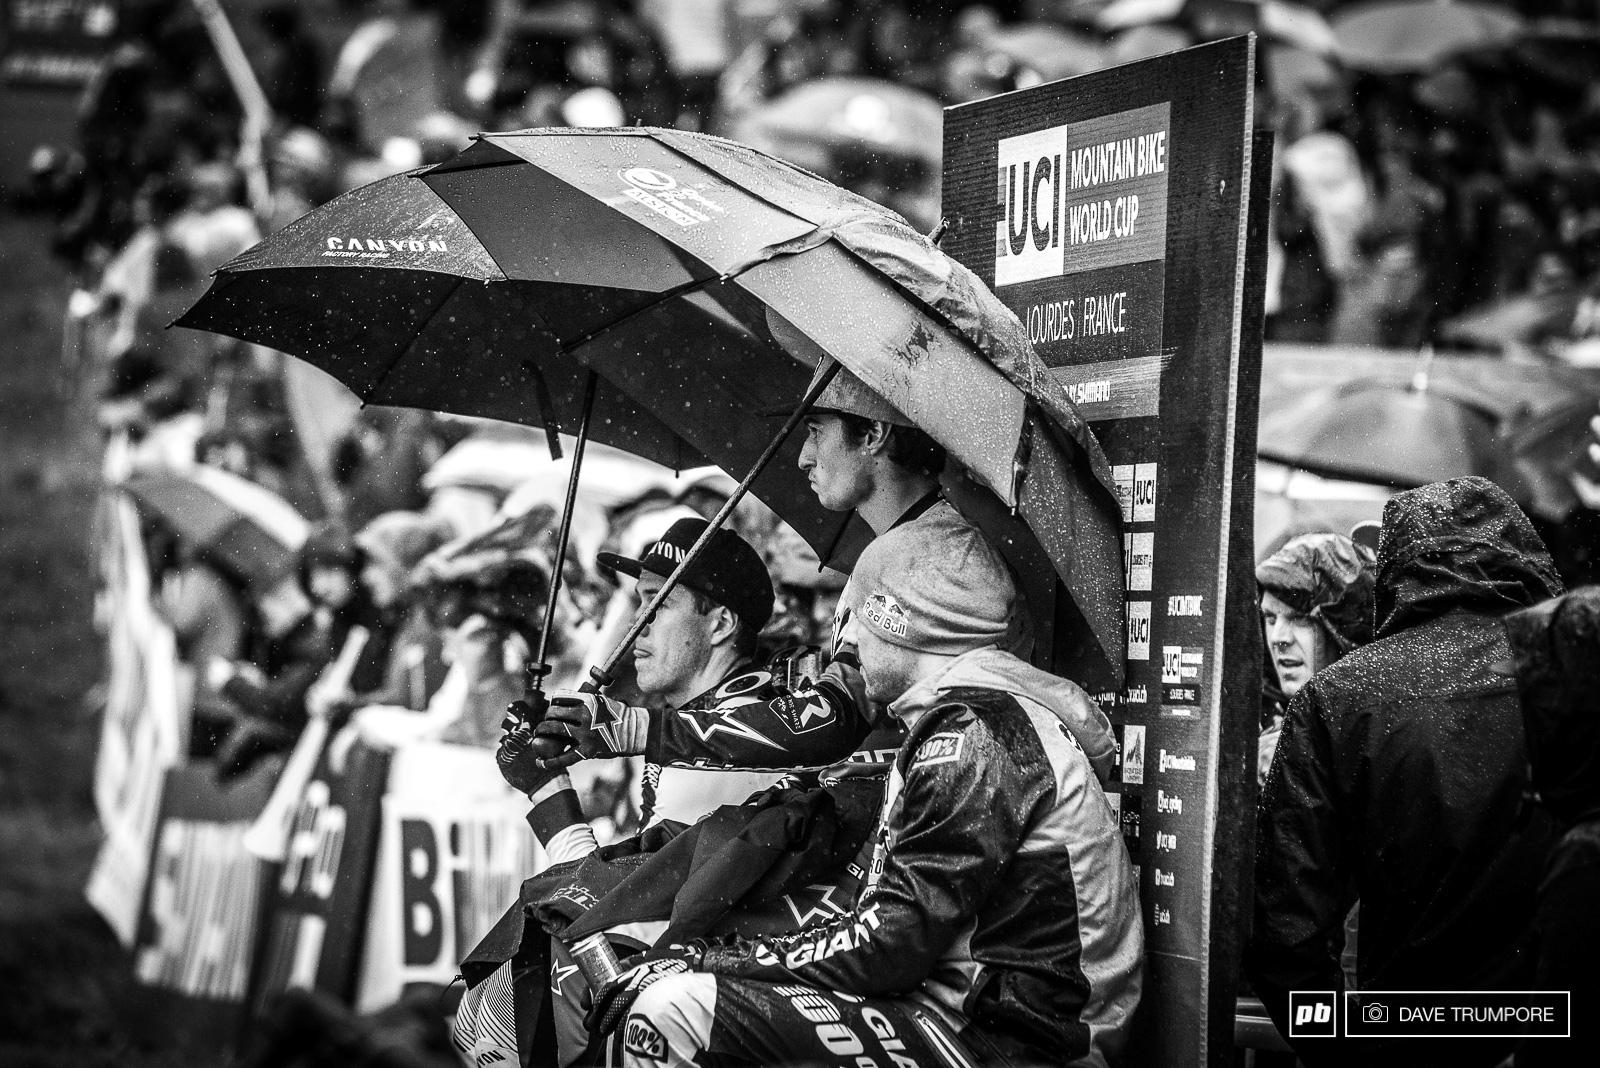 The nervous three riders on the very wet hot seat. Once the rain came down and the wind picked up their fates were sealed.